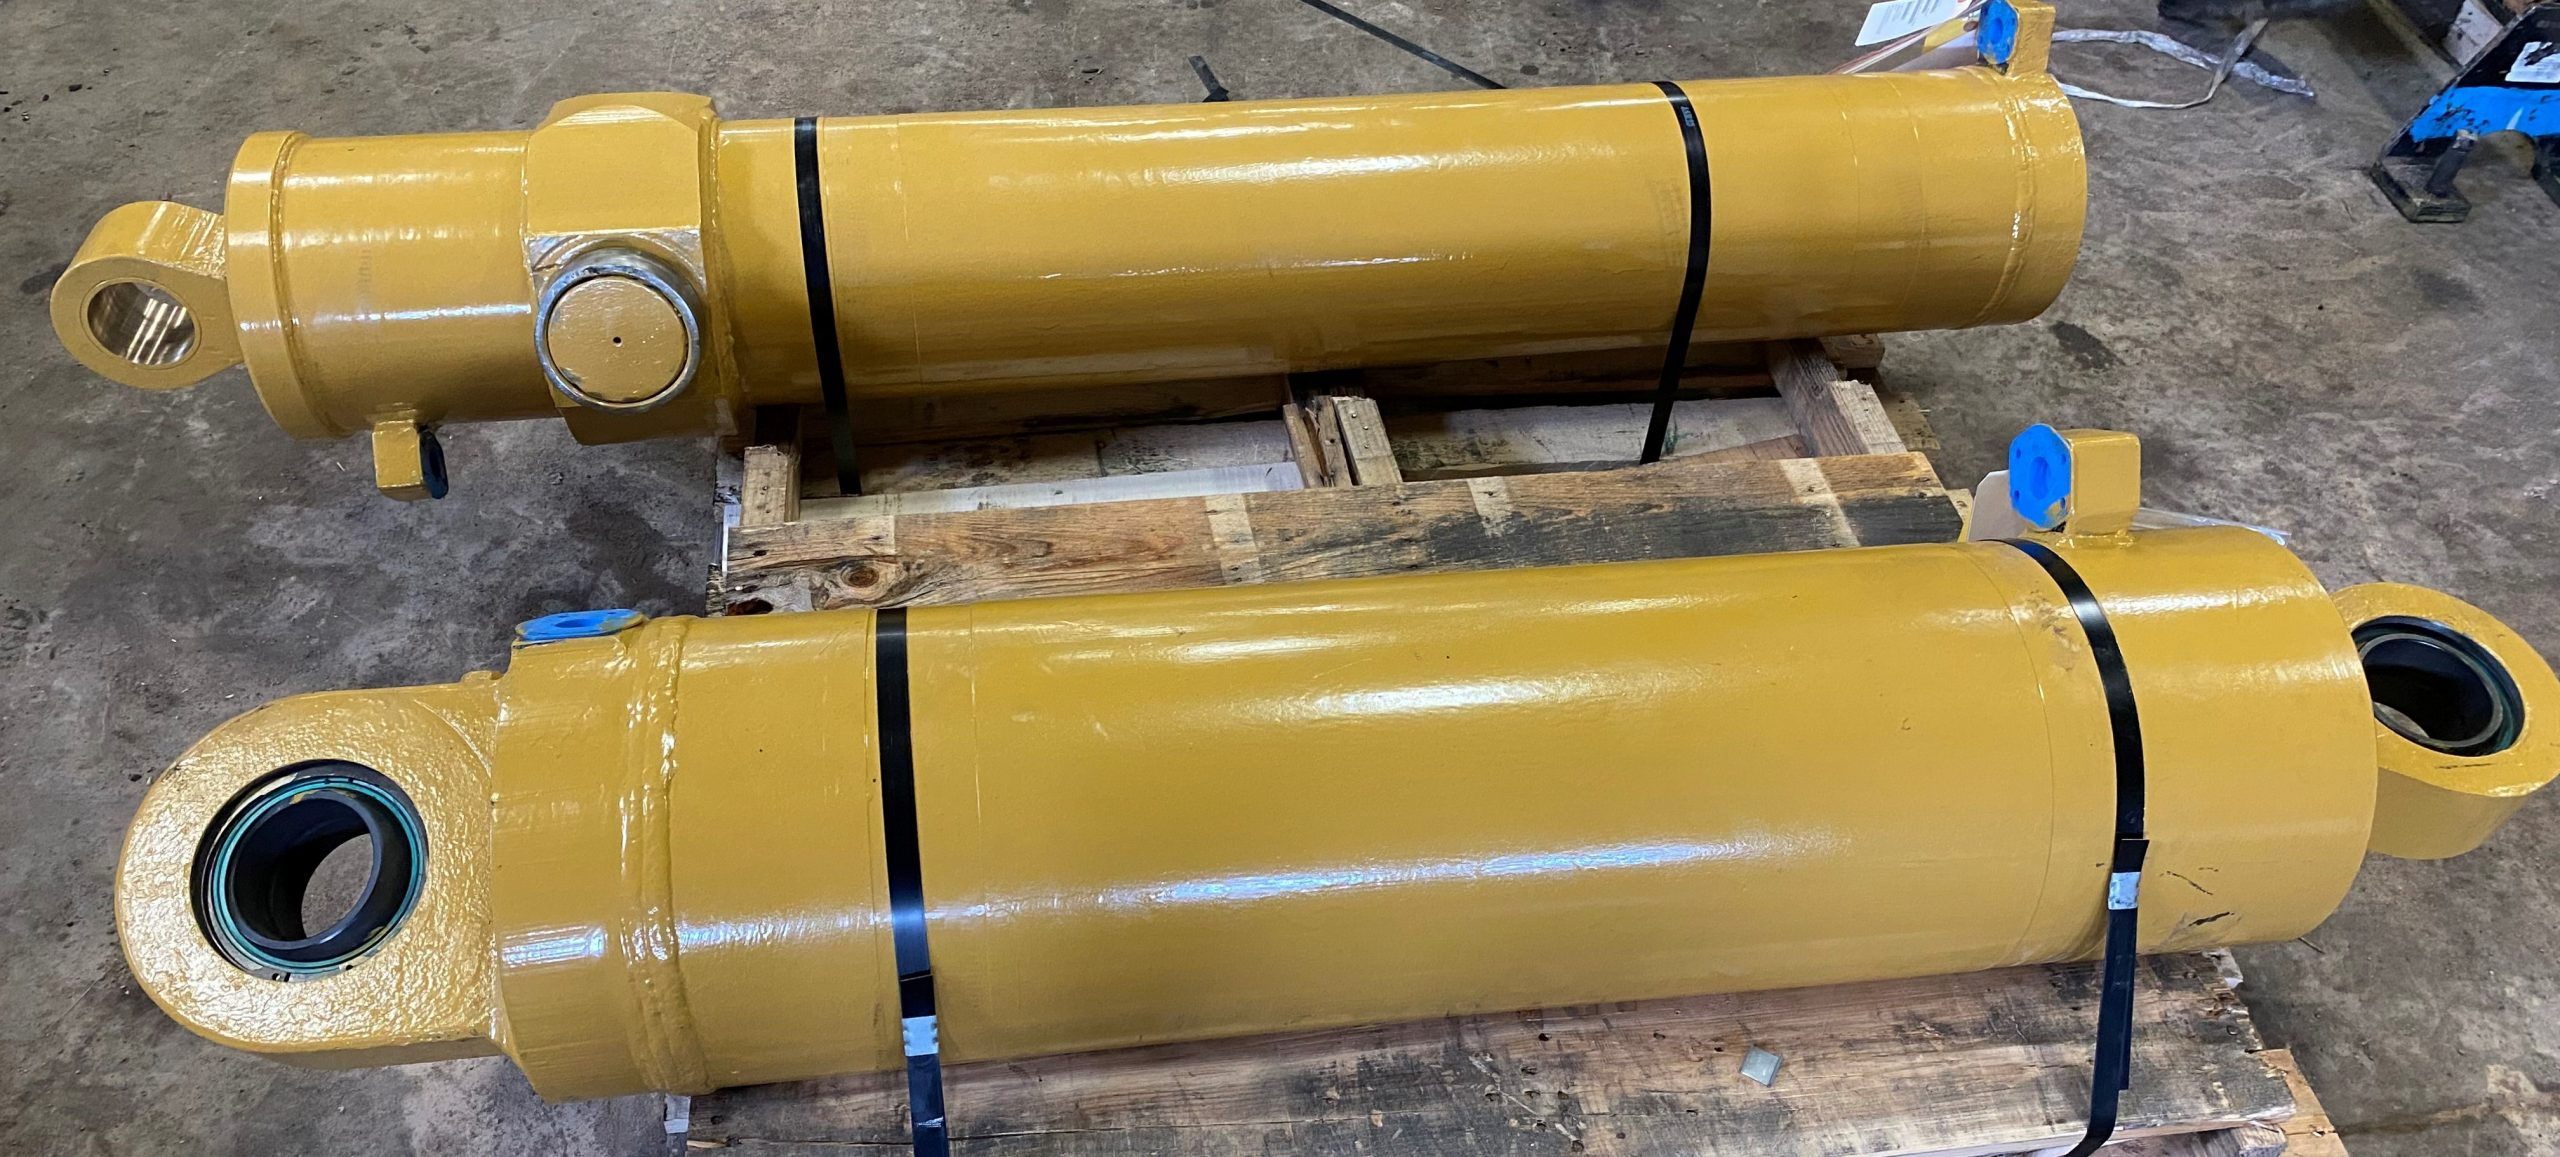 Complete rebuild of hydraulic cylinders by Rector's